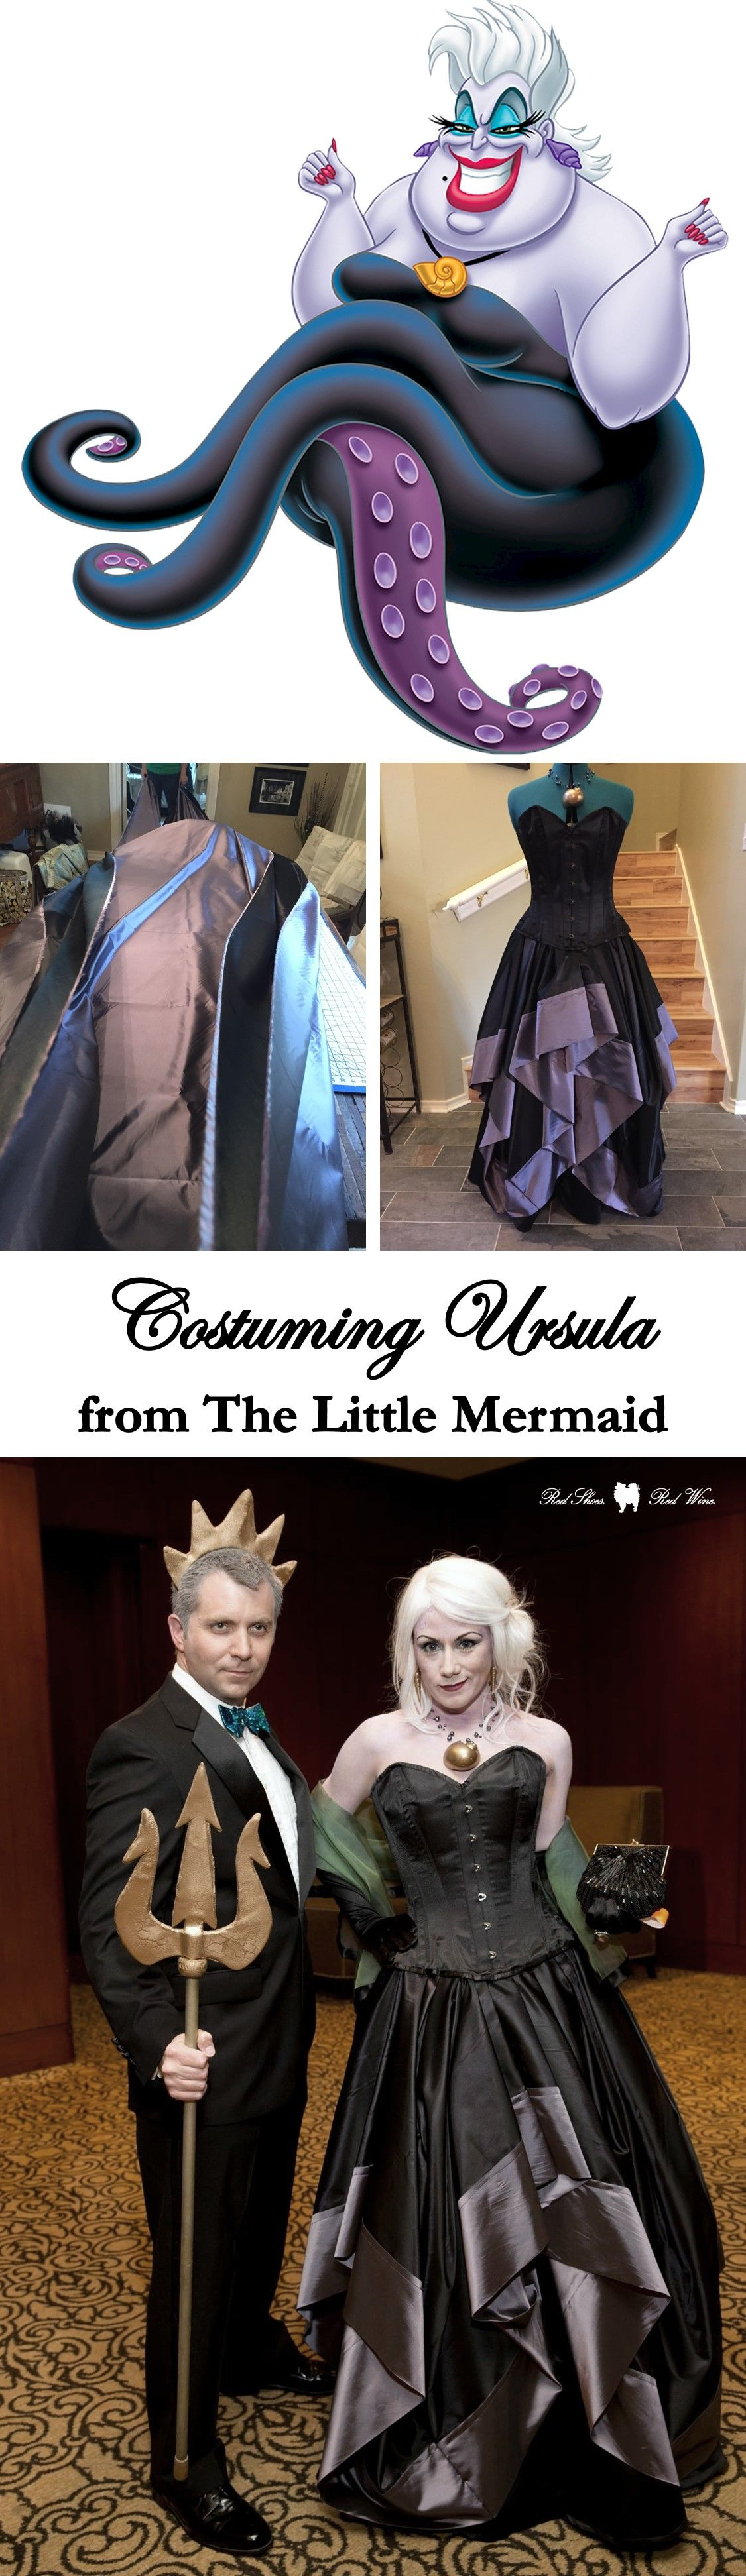 Costuming ursula from disneys the little mermaid cosplay costume costuming ursula from disneys the little mermaid cosplay costume halloween diy solutioingenieria Images